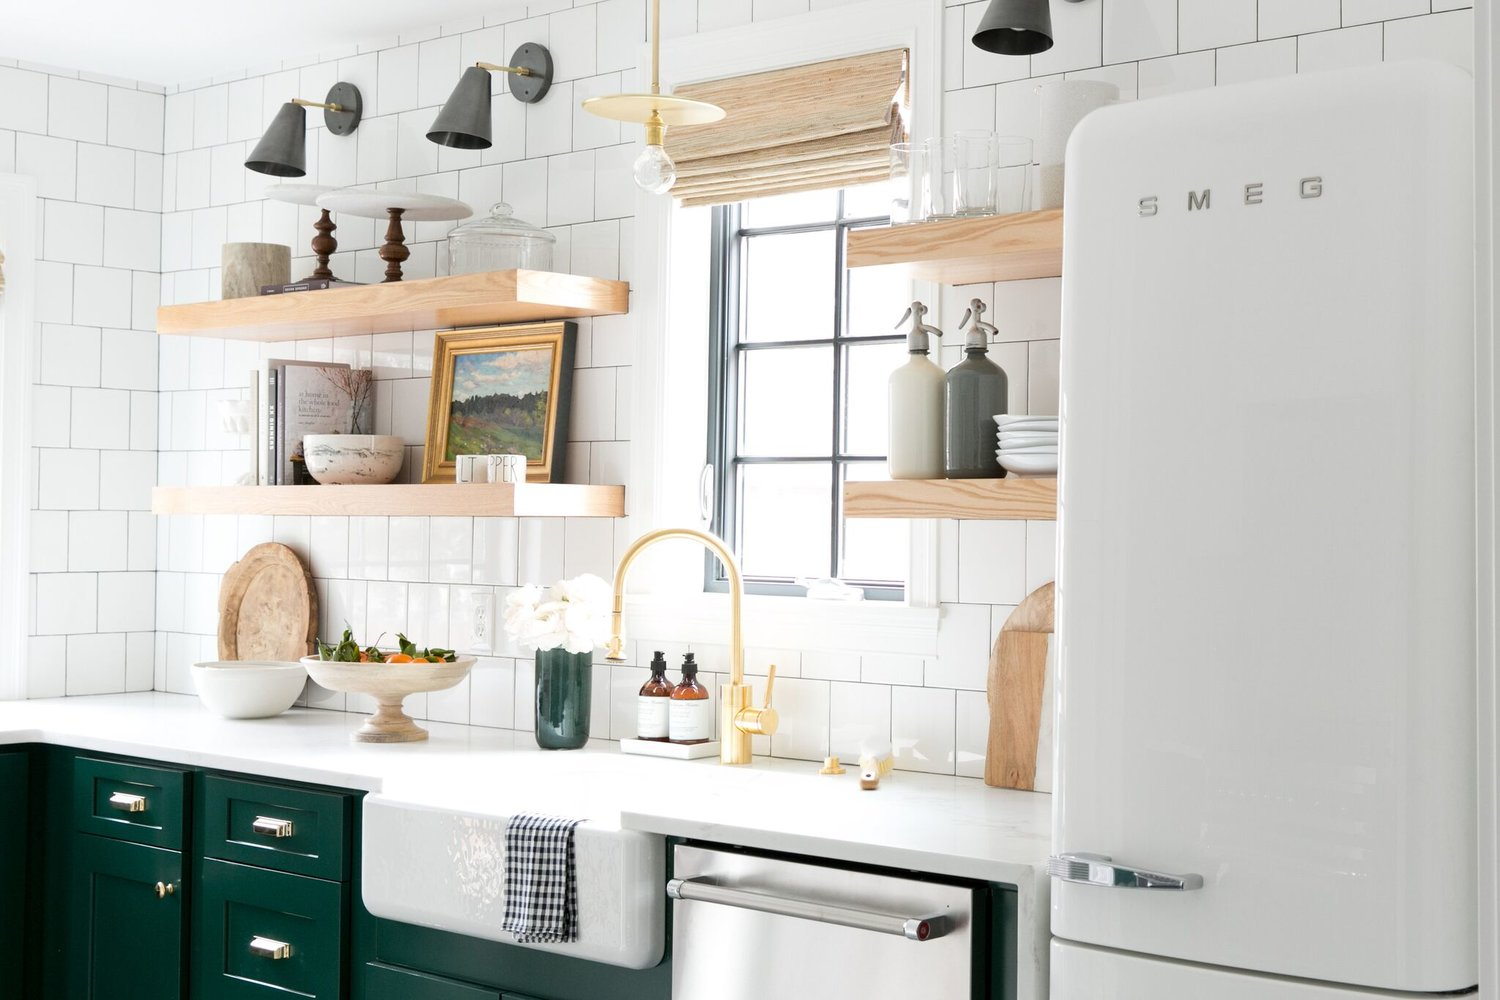 Green cabinet kitchen with white tiled background